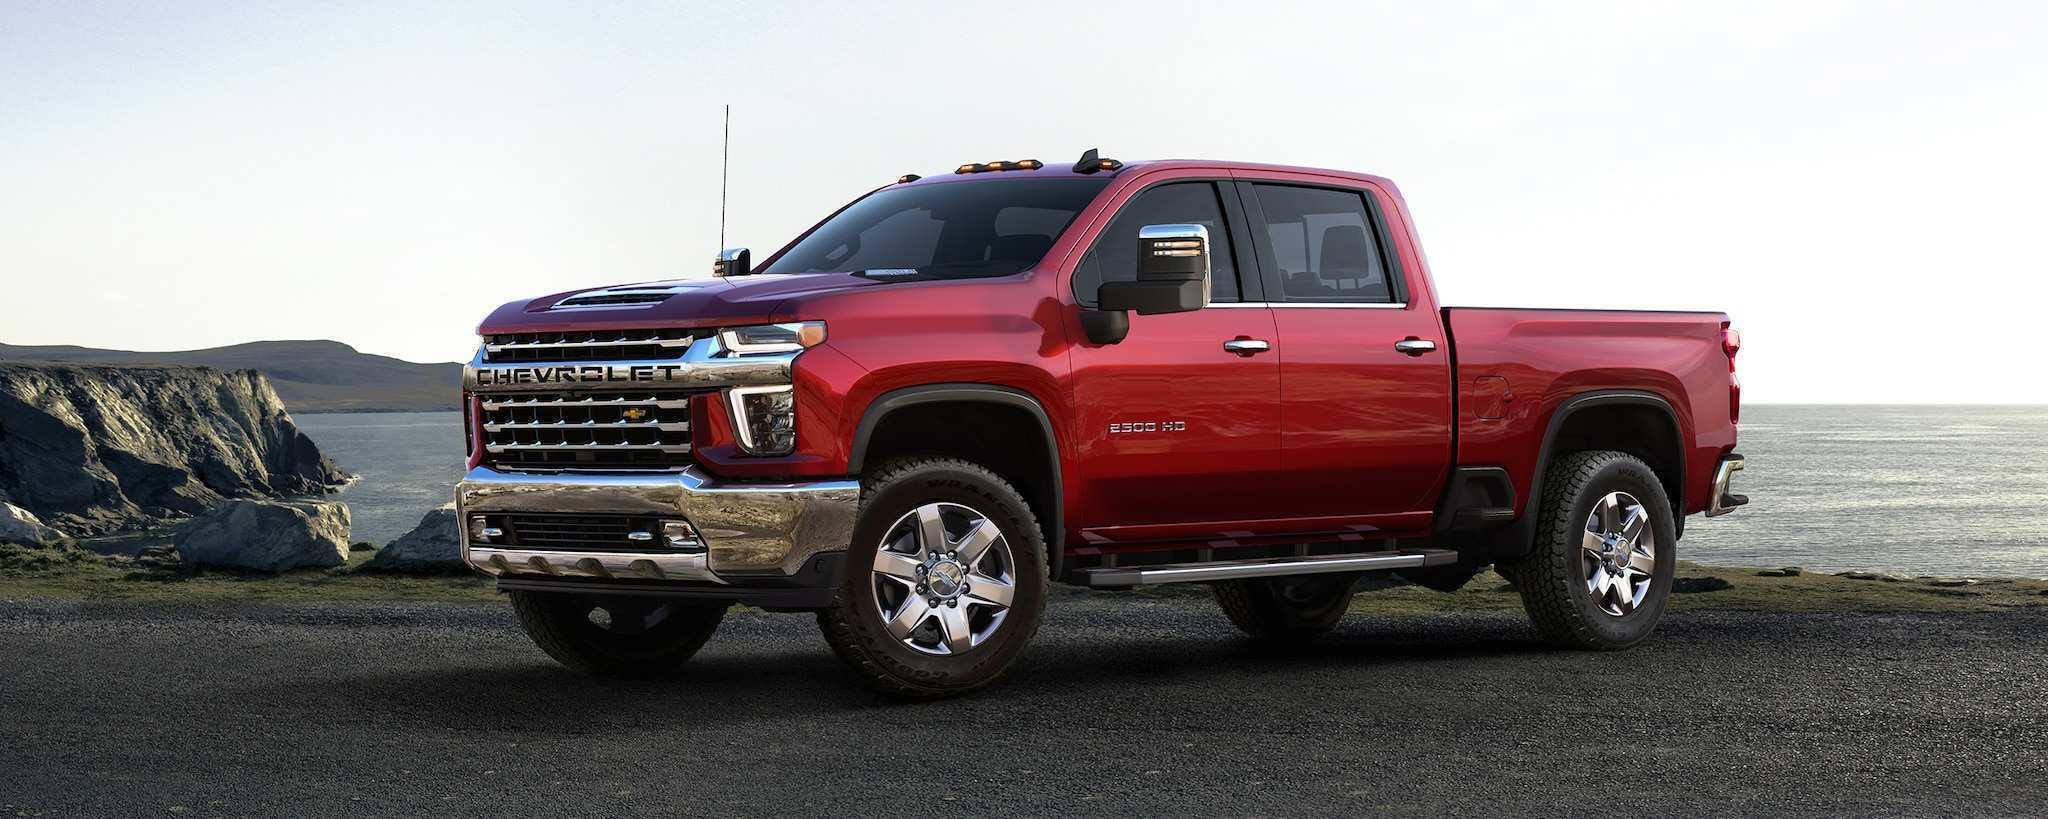 41 New 2020 Chevrolet 2500 Ltz Price And Review